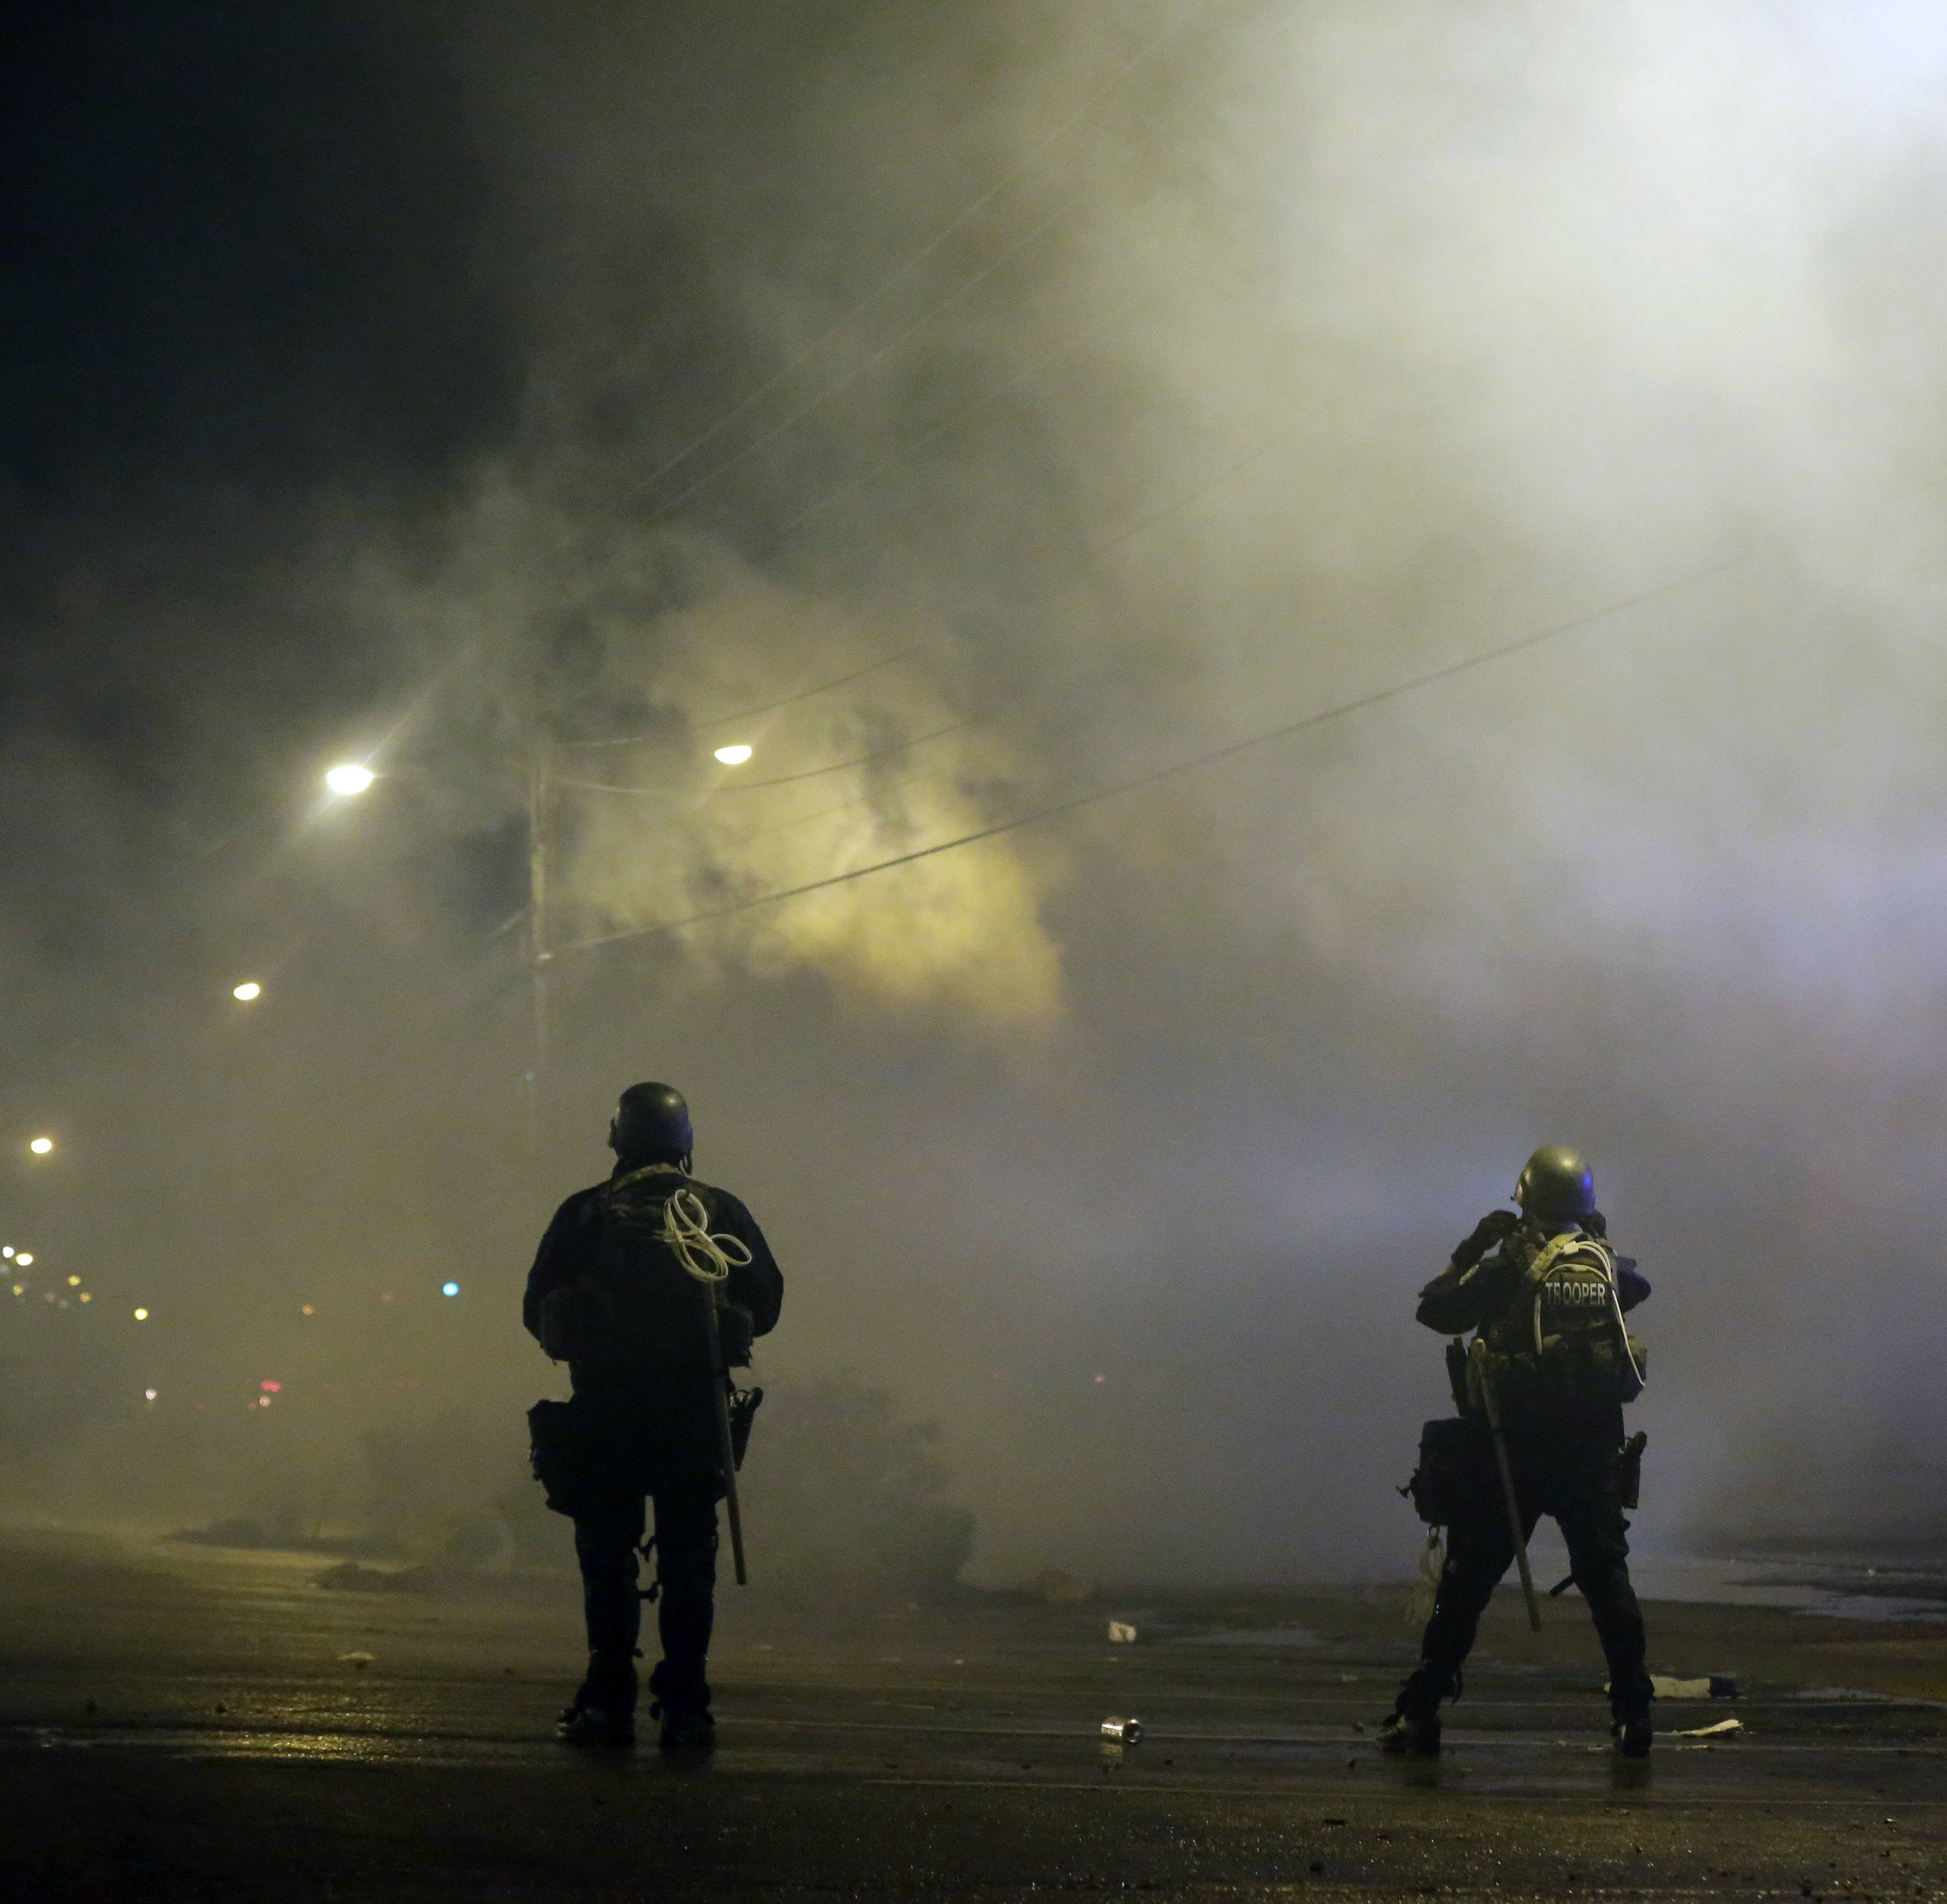 Tear gas was fired early Sunday morning to disperse a crowd protesting the shooting of teenager Michael Brown last Saturday in Ferguson, Mo.